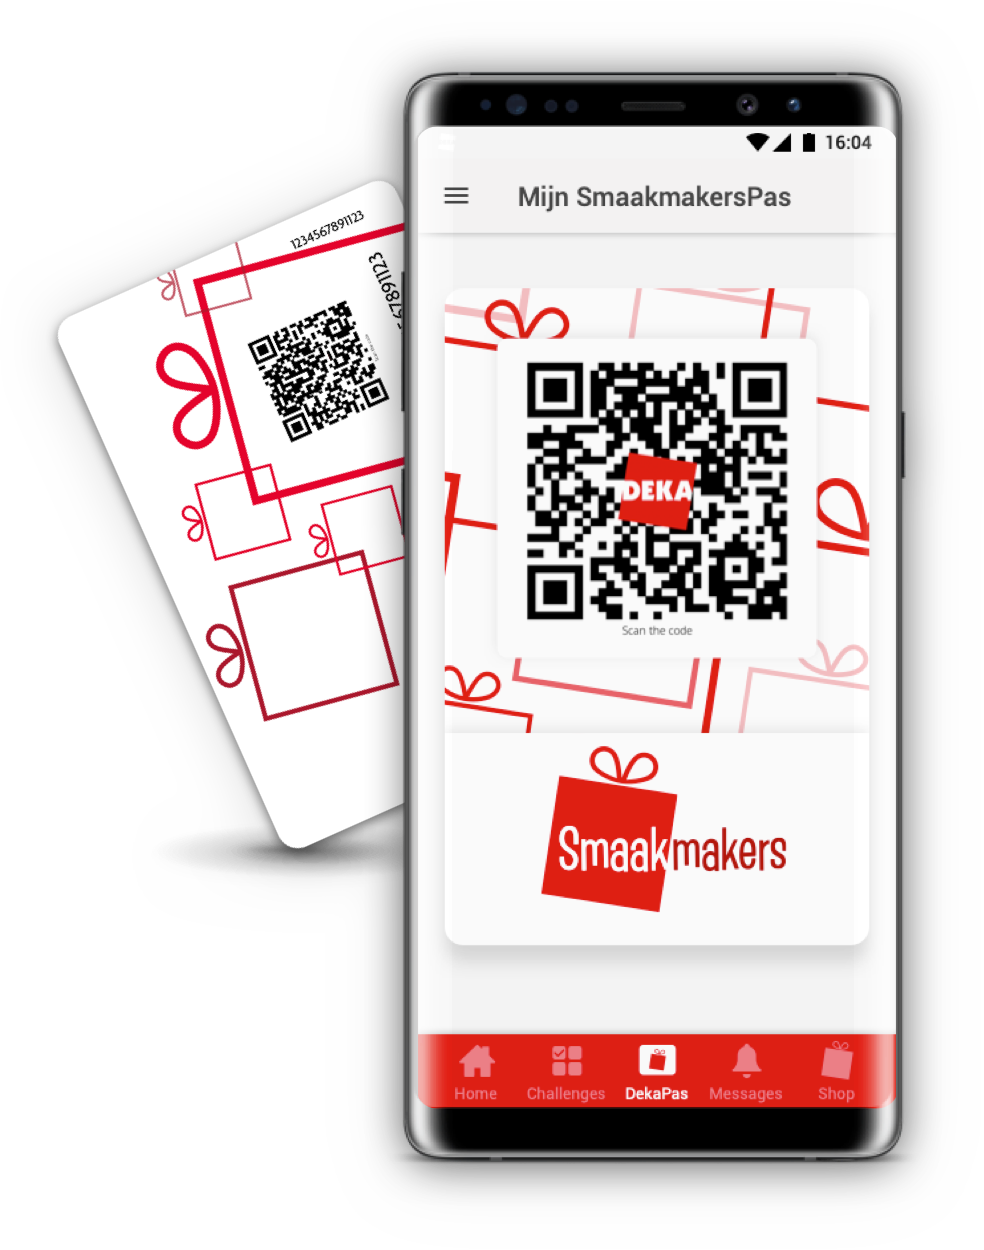 Mobile and QR code